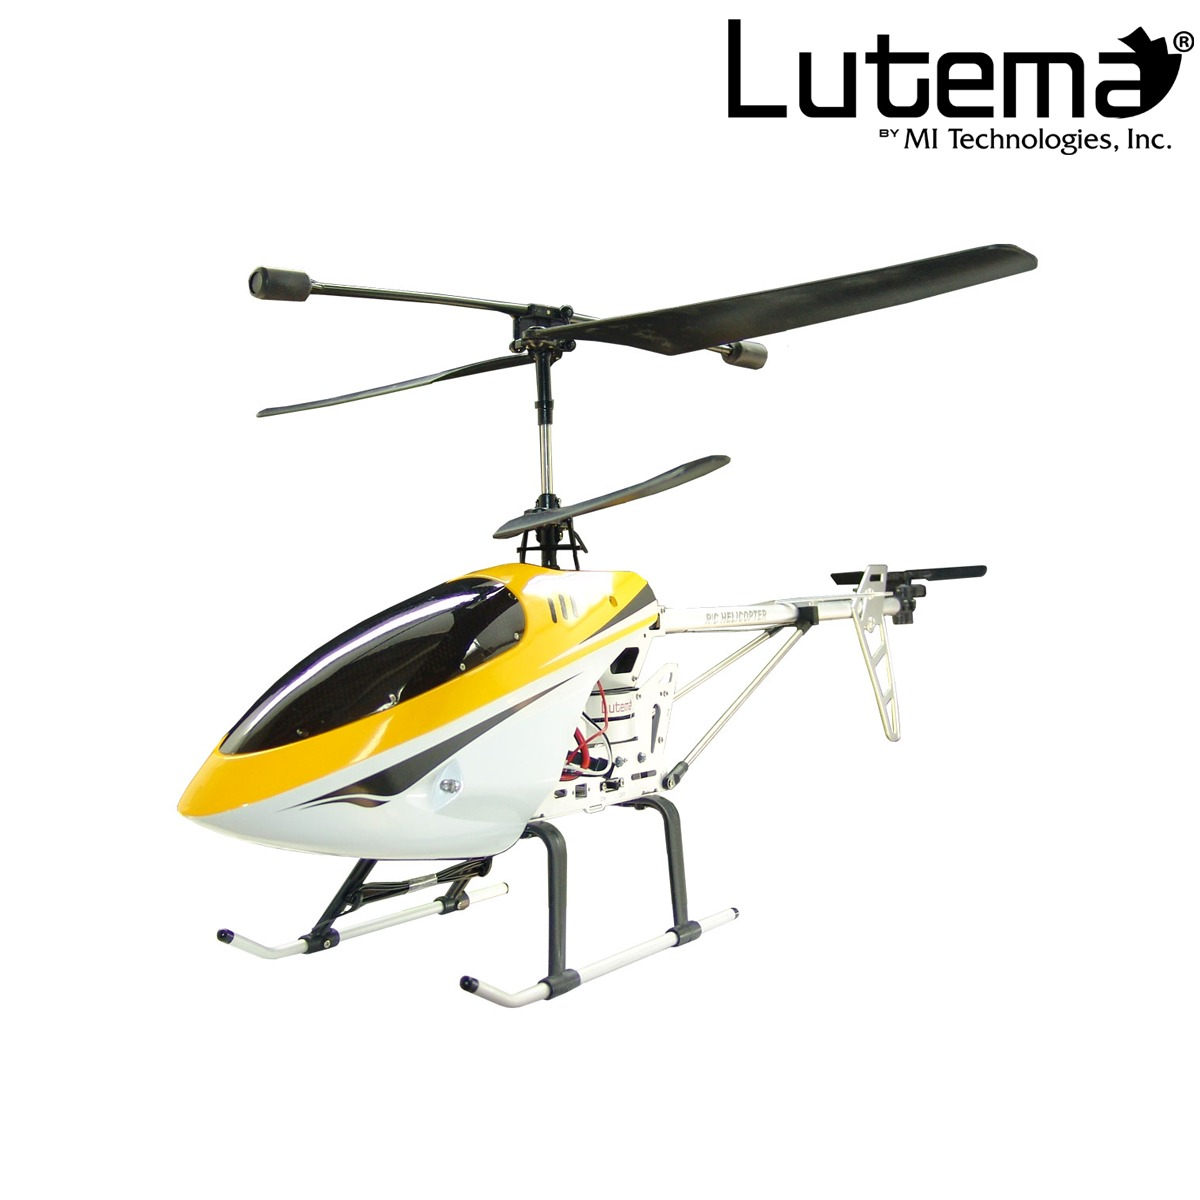 lutema helicopter with Mlm 538910537 Lutema Large 35ch Remote Control Helicopter Yellow  Jm on Haktoys Hak635c Rc Helicopter additionally 361220886048 furthermore Tenergy T100 110 Scale Rc Atv Drifting Motorbike as well 3463 in addition Best Remote Control Helicopters.